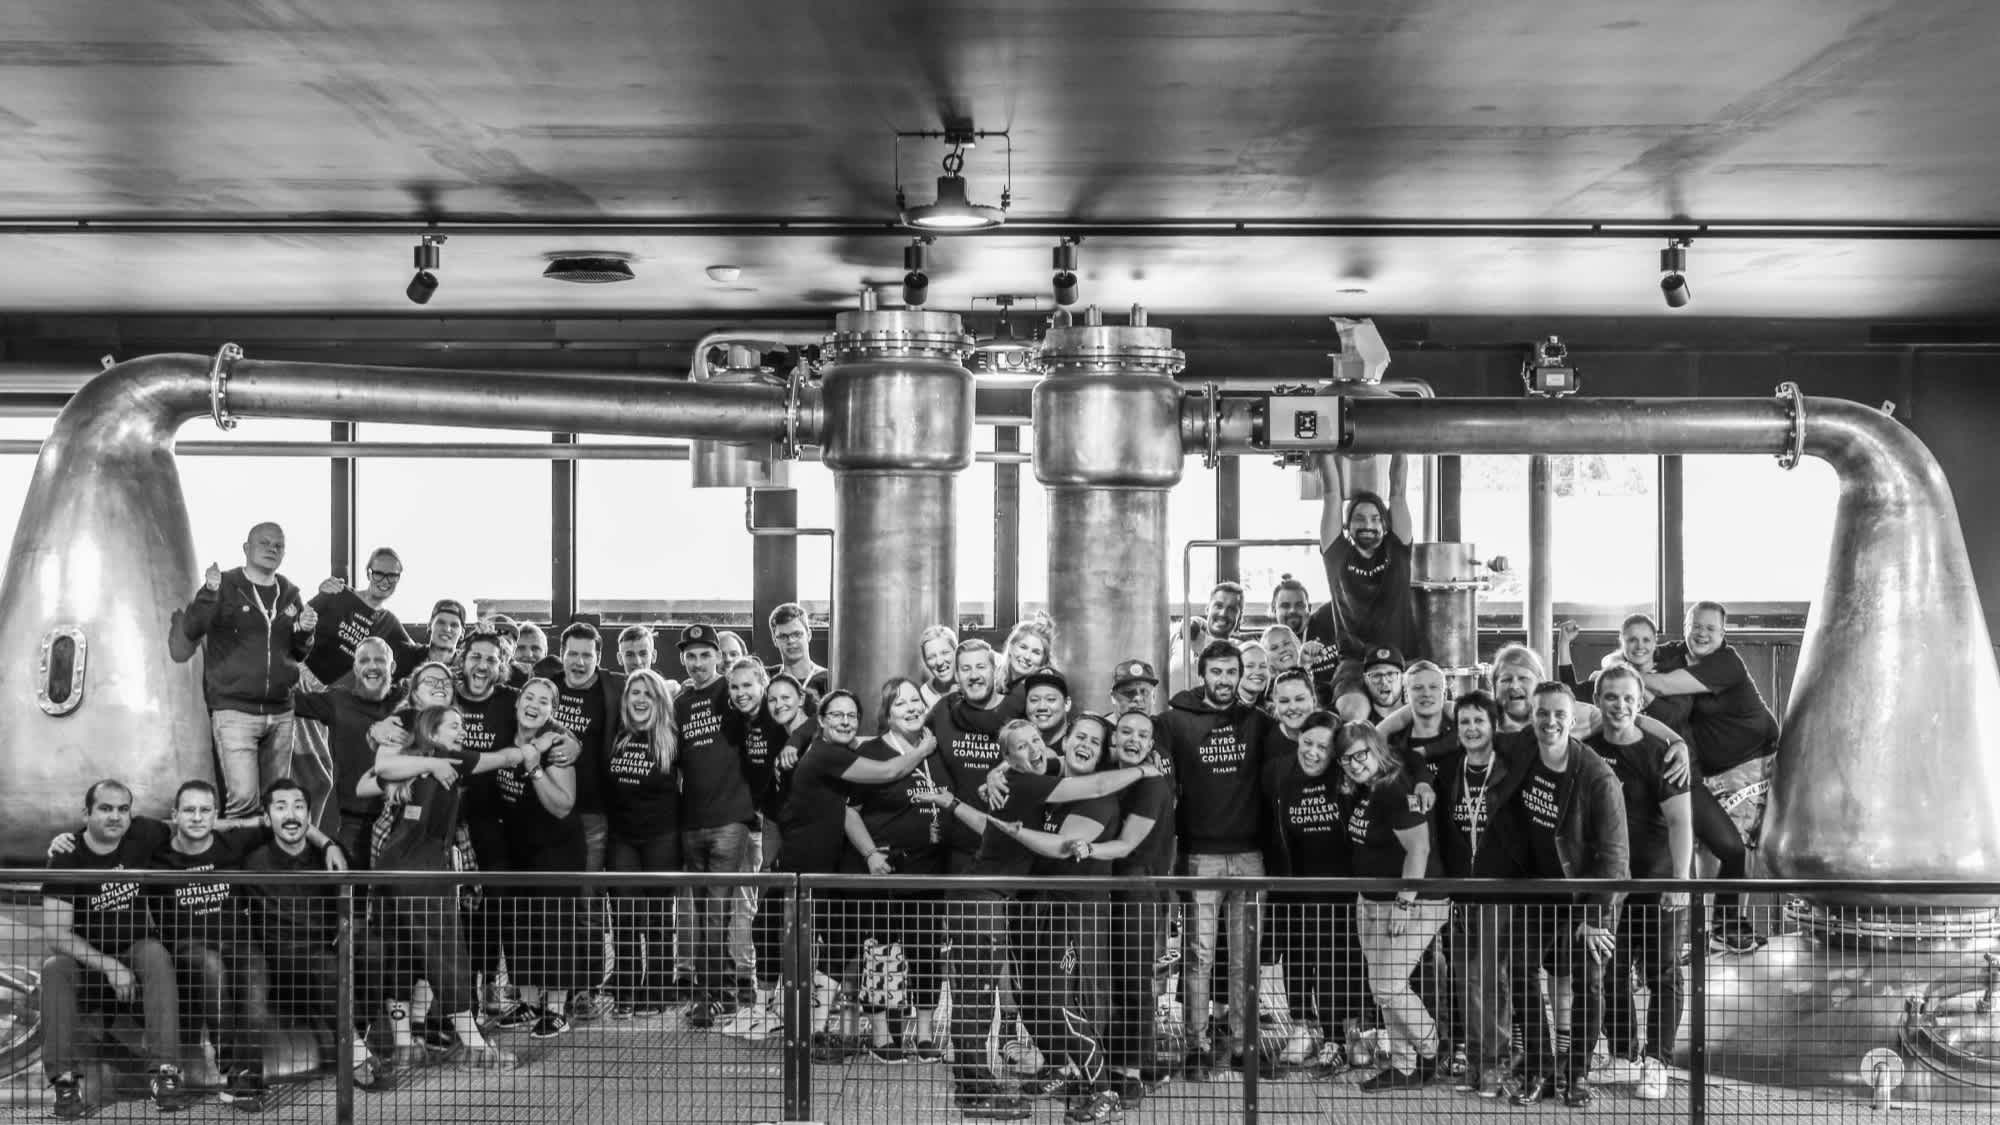 A black and white image of the Kyrö people: most of the Kyrö team pictured in front of the whisky pot distills in Isokyrö, Finland.